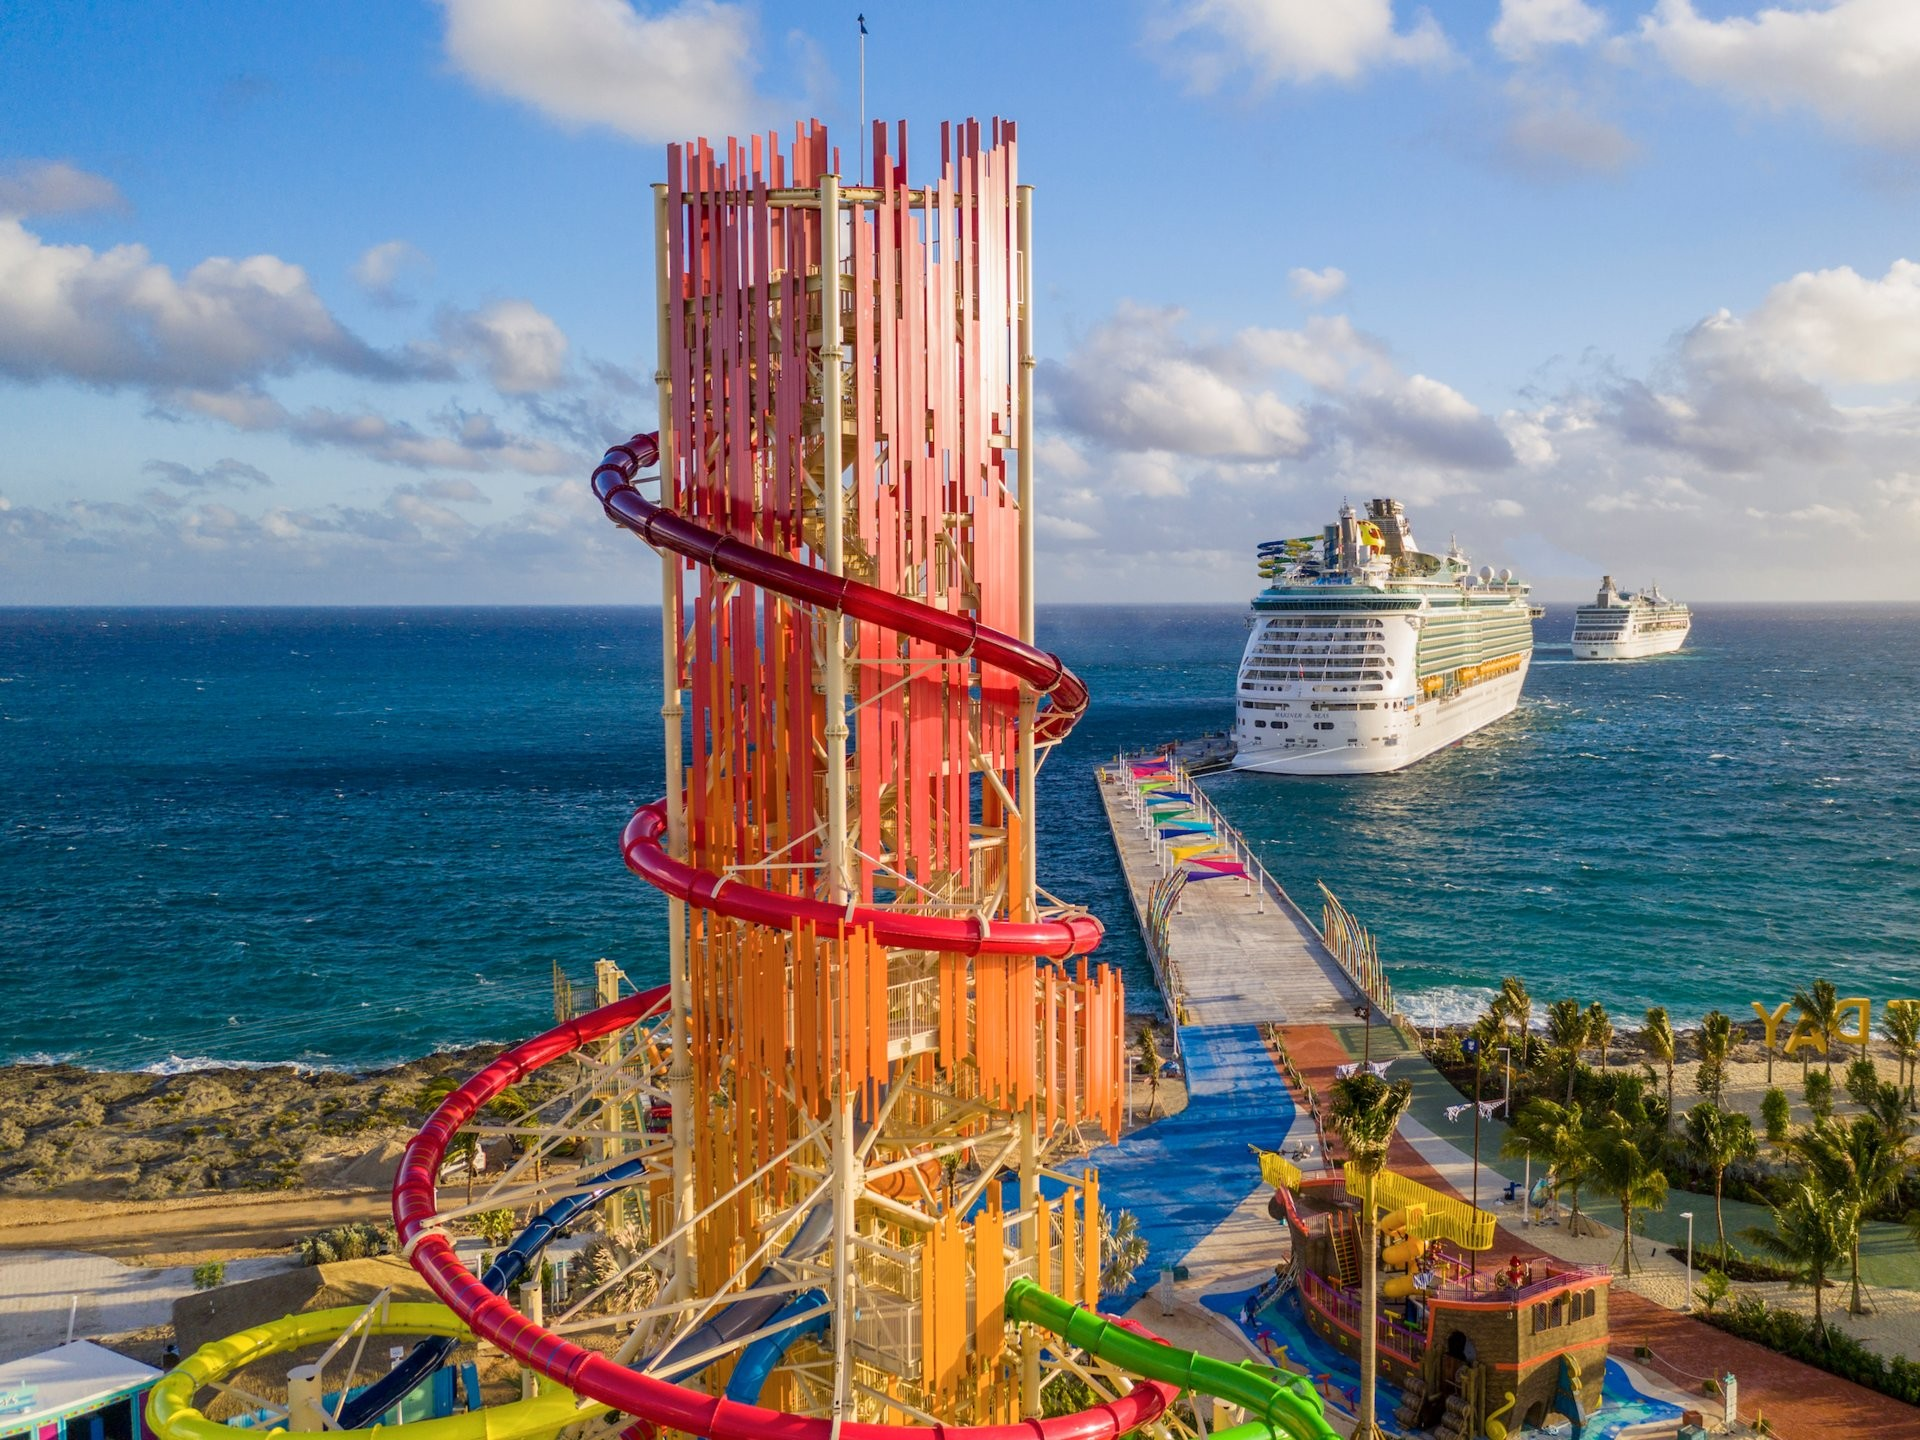 This Royal Caribbean private island cost US$250 million to